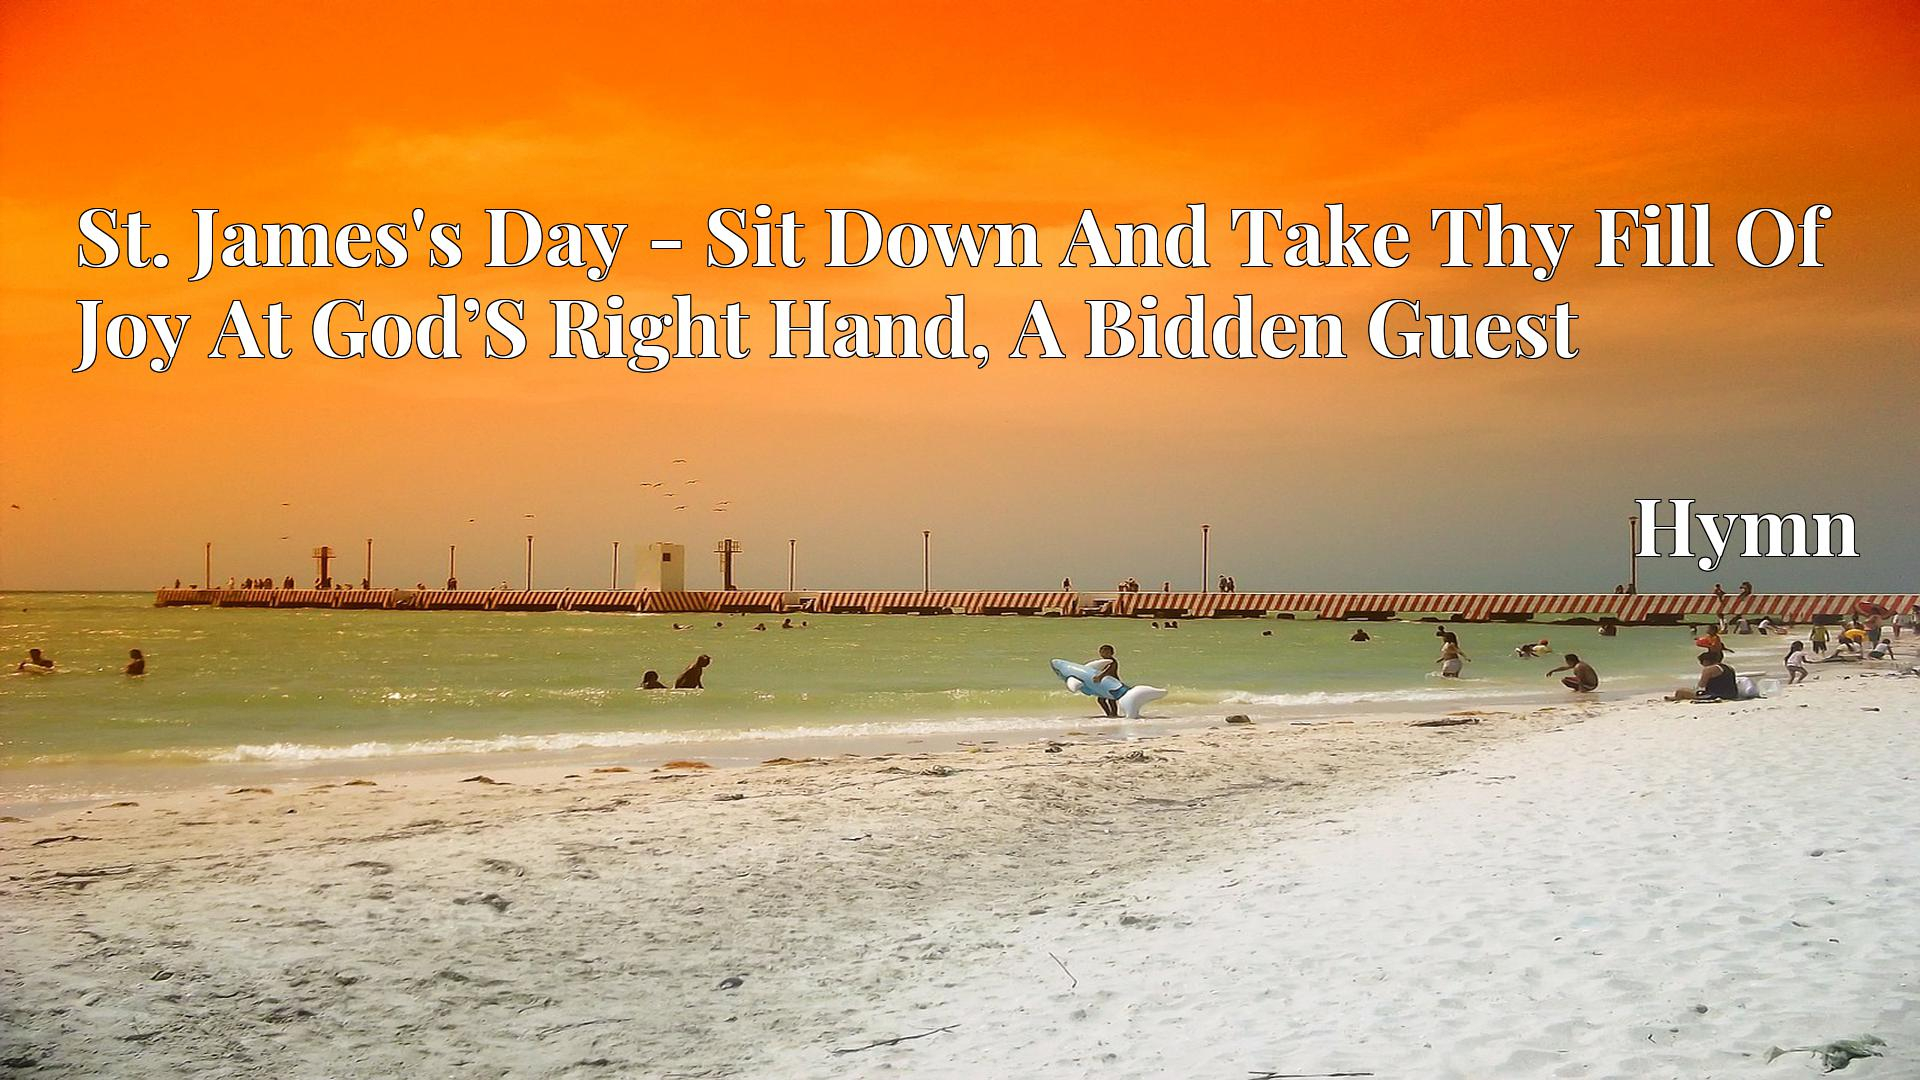 St. James's Day - Sit Down And Take Thy Fill Of Joy At God'S Right Hand, A Bidden Guest - Hymn